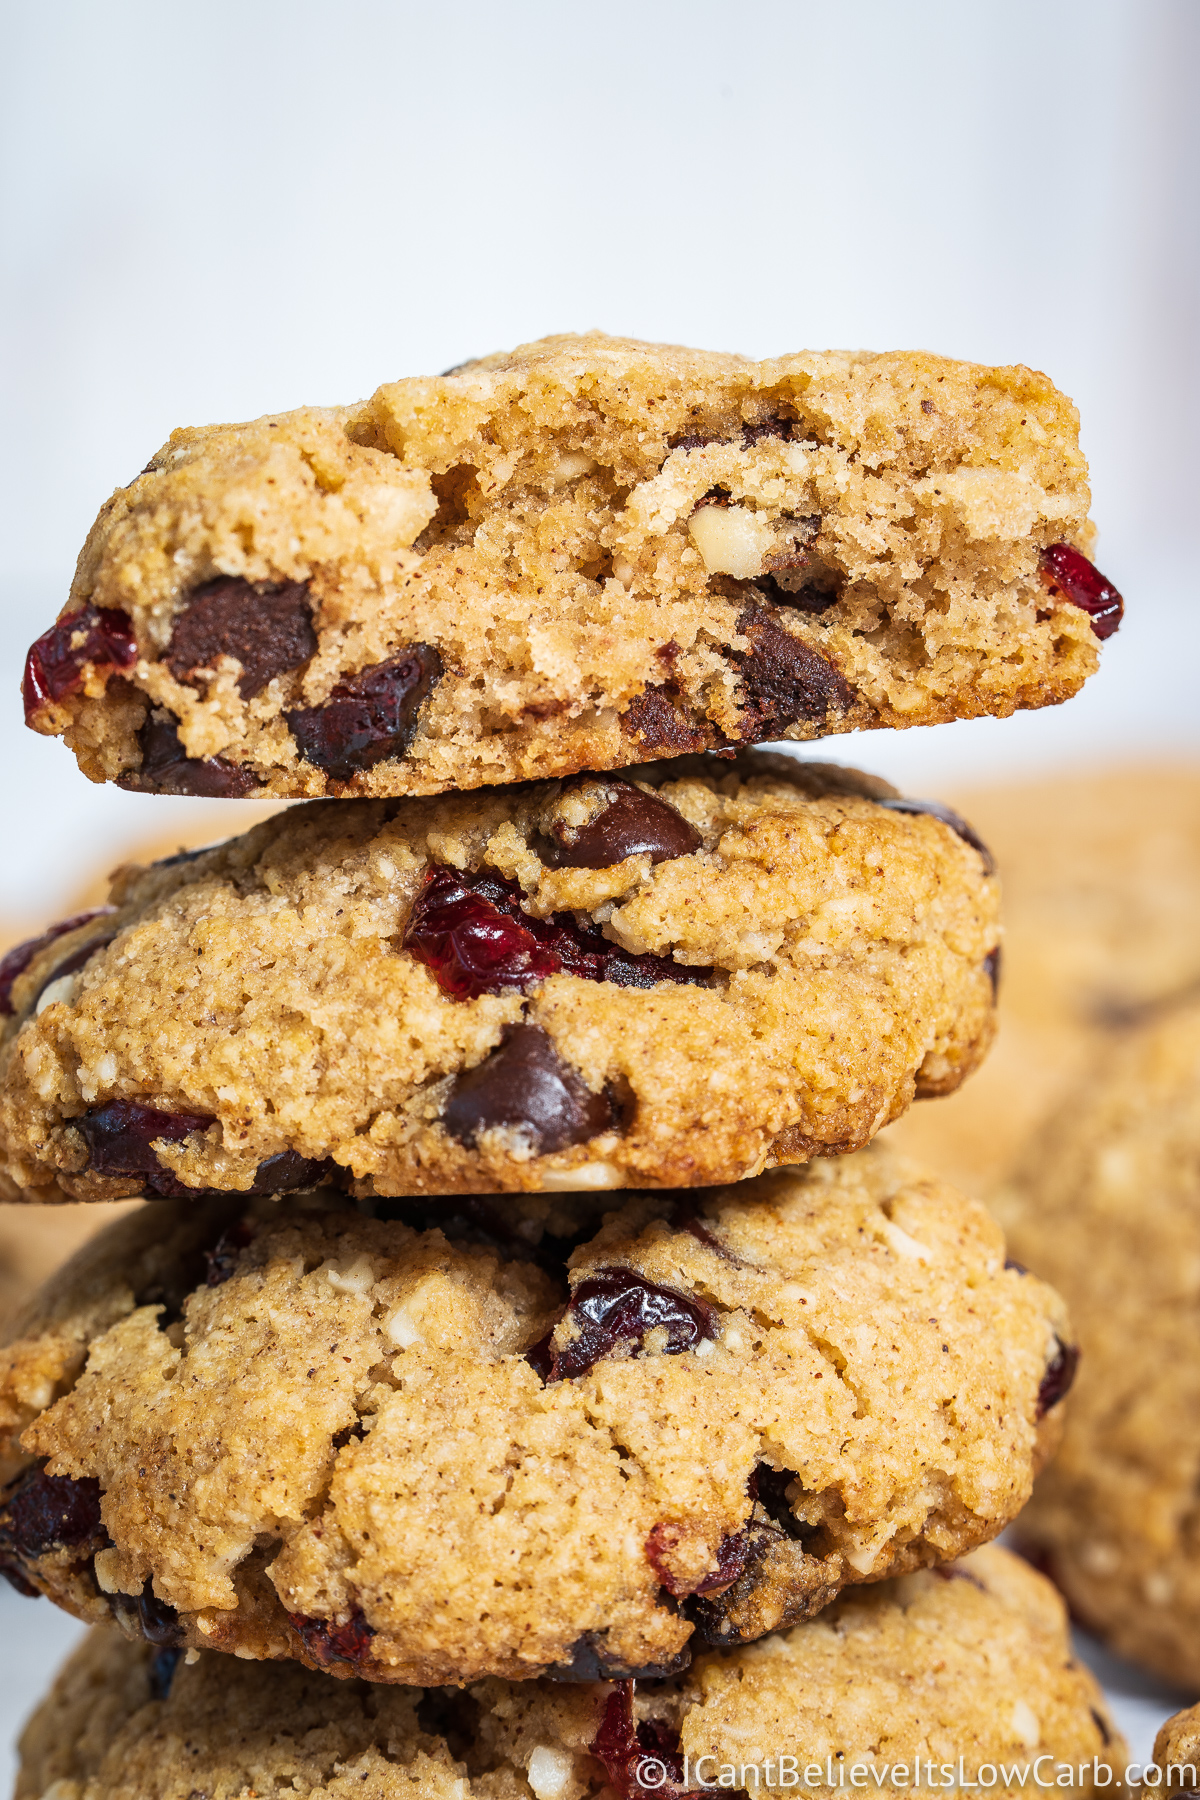 Taking a bite out of Keto Oatmeal Cookies